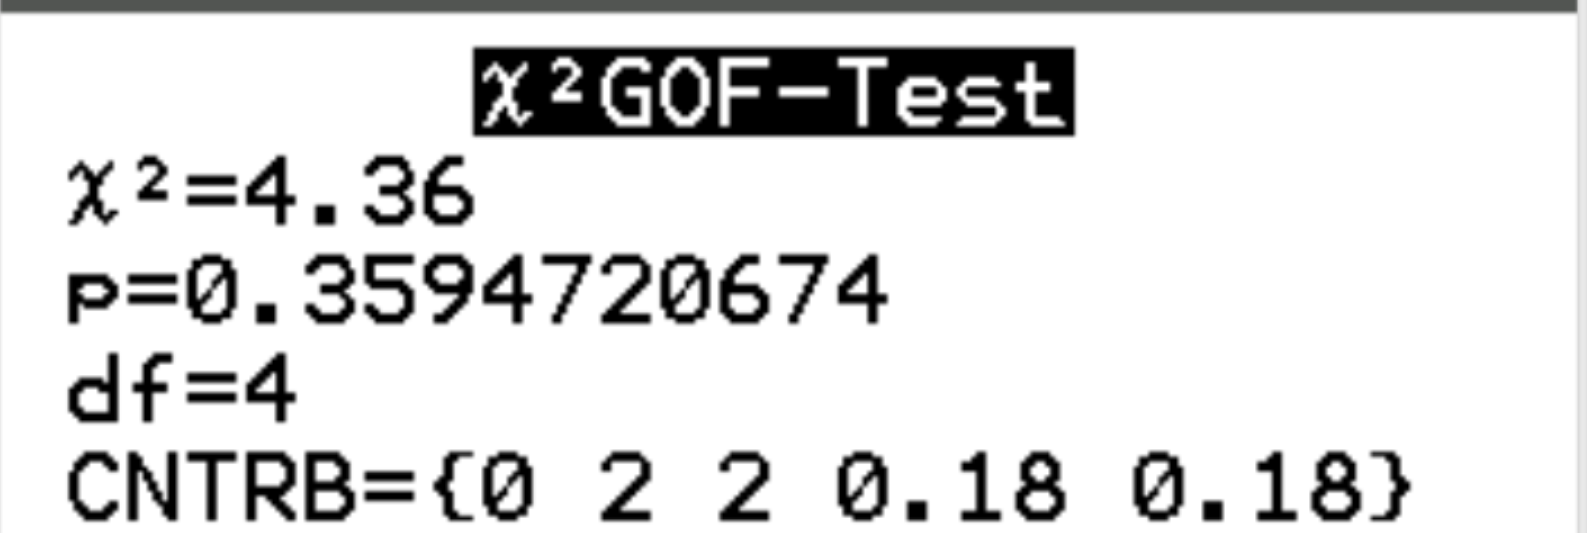 Chi-Square goodness of fit test output on TI-84 calculator